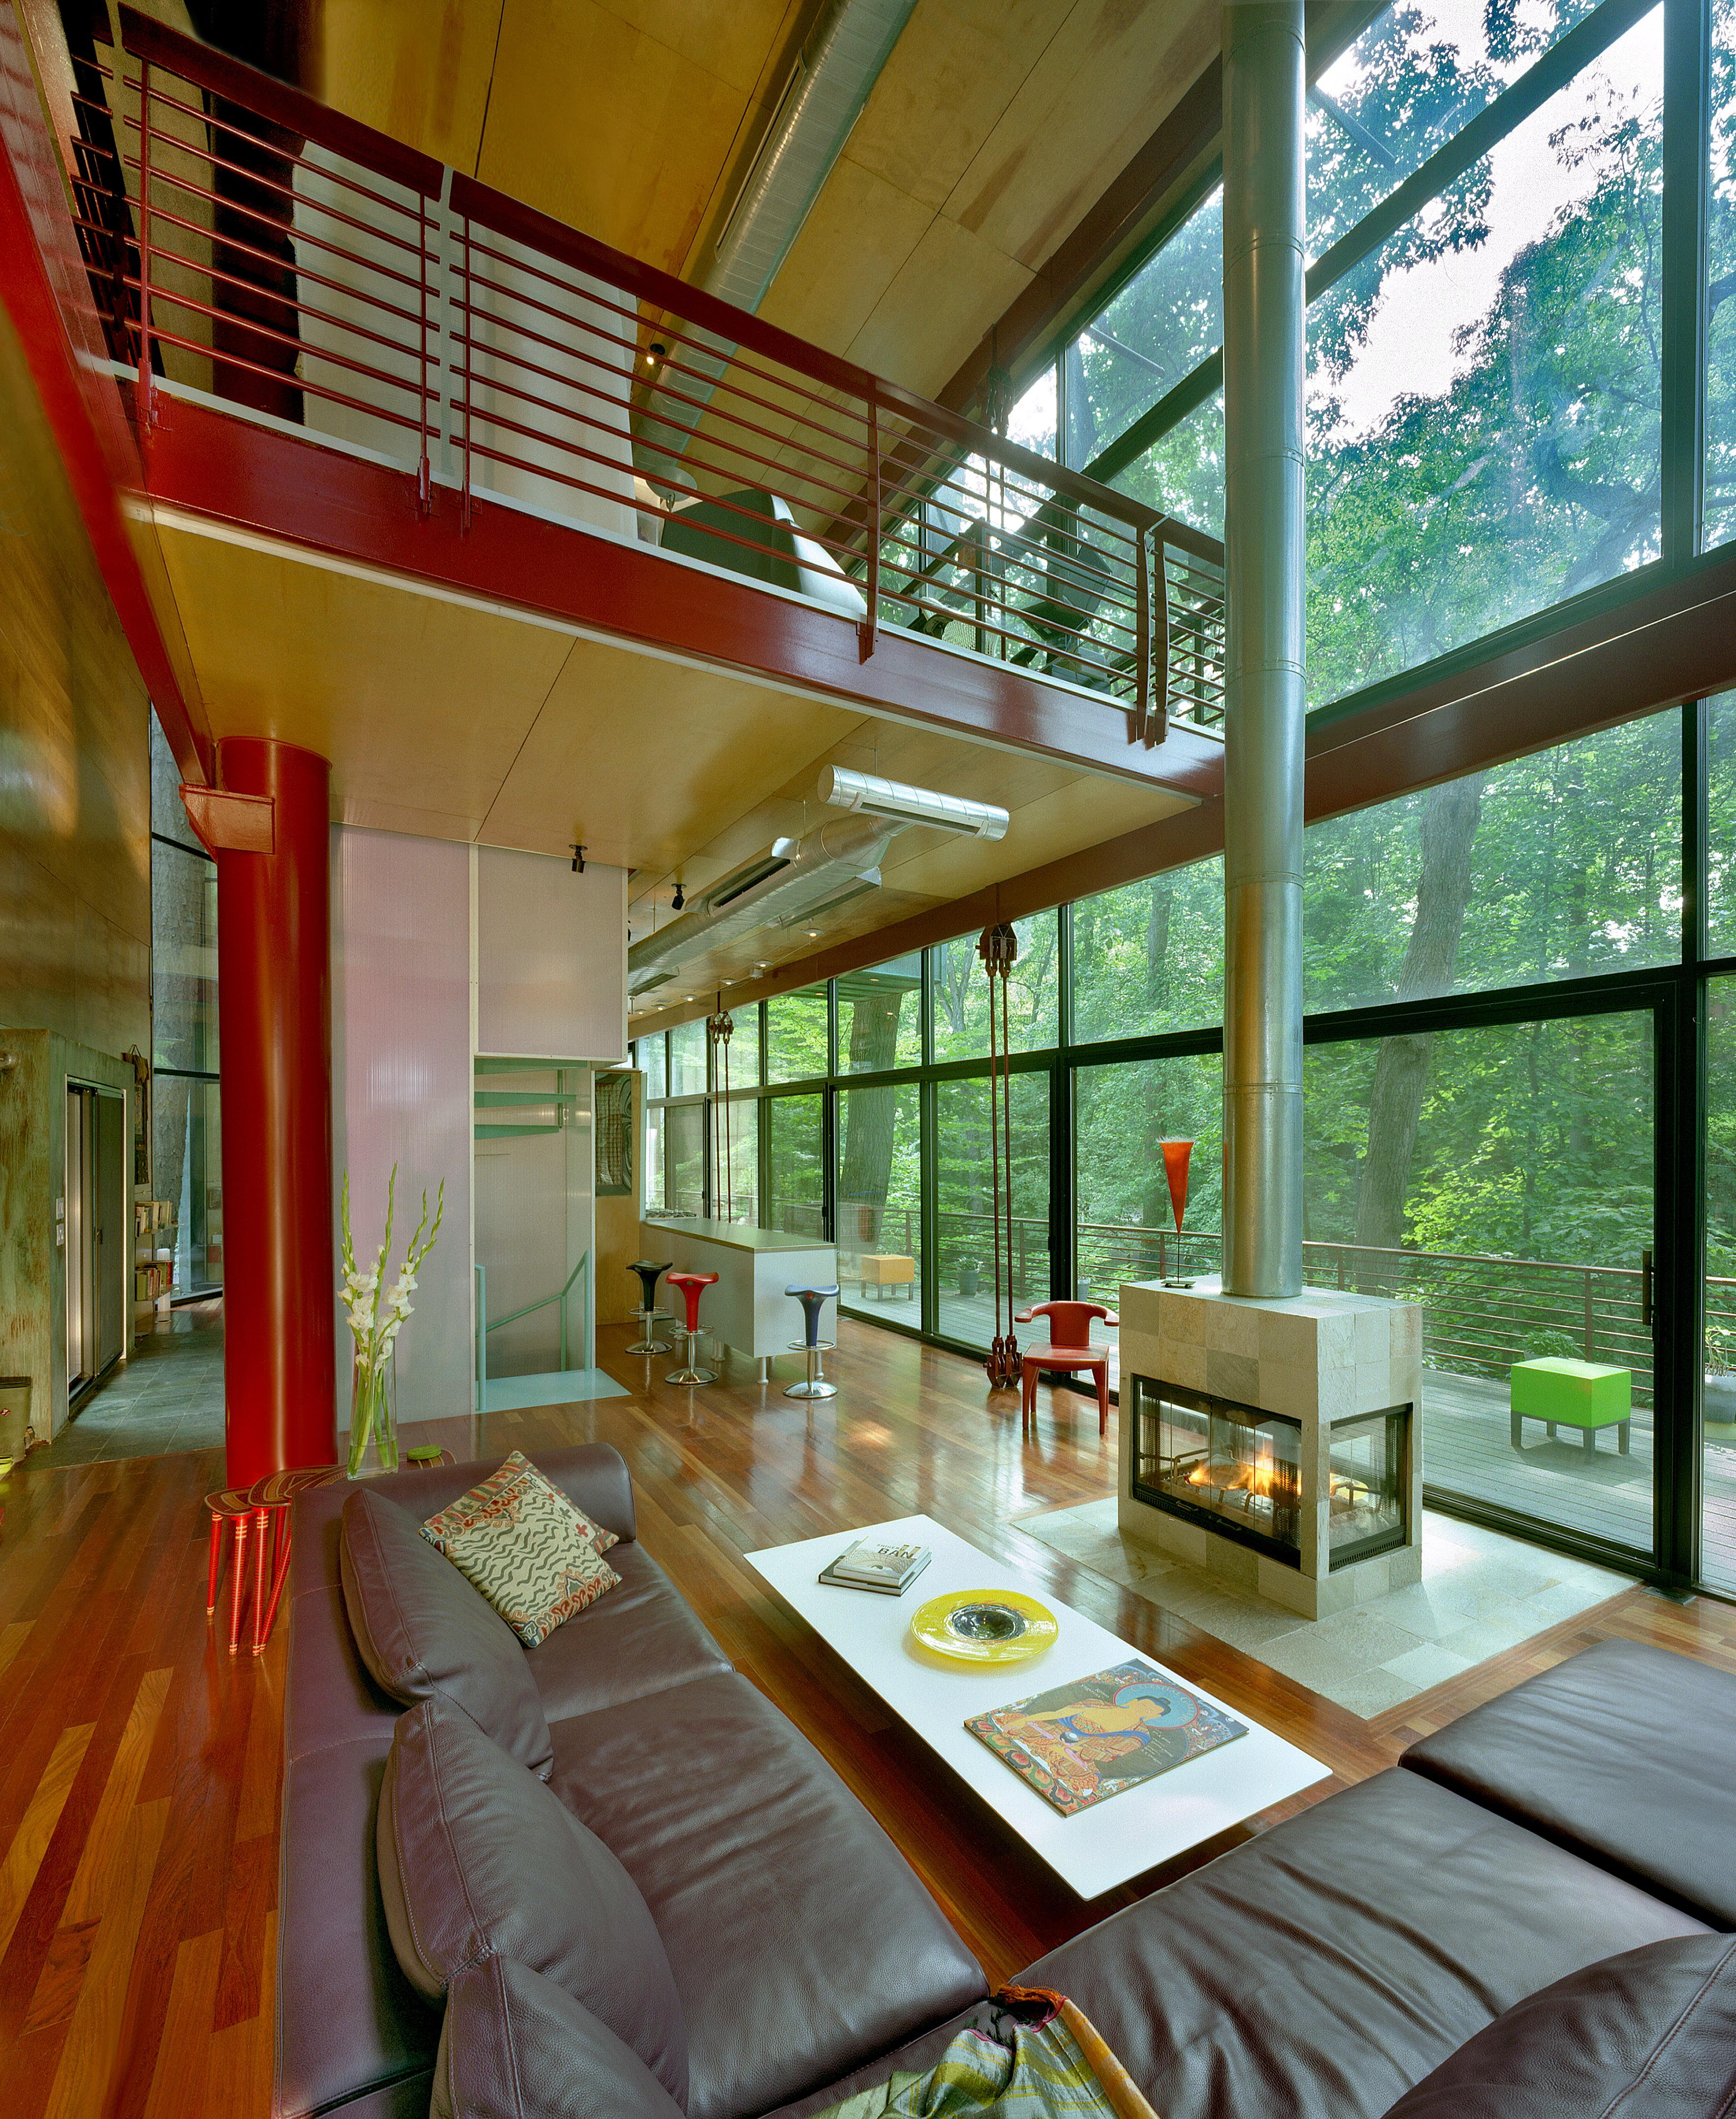 The home is inspired by the simple and natural virtues of the site's trees and rock outcroppings. An abundance of trees splitting rocks near a stream bed are the essences of the Park running through the center of D.C. The home is seen as an abstracted tree with a street side of patina copper planted on two columns at the cliff's edge hung by steel cables. The park side rear is clad with transparent super-insulated glazing. Trees are saved and wrap through the house. The design desires to blend into the park by its matching natural colors as well as its use of glass which reflectively display the preserved trees surrounding it. (Image: Ken Wyner)